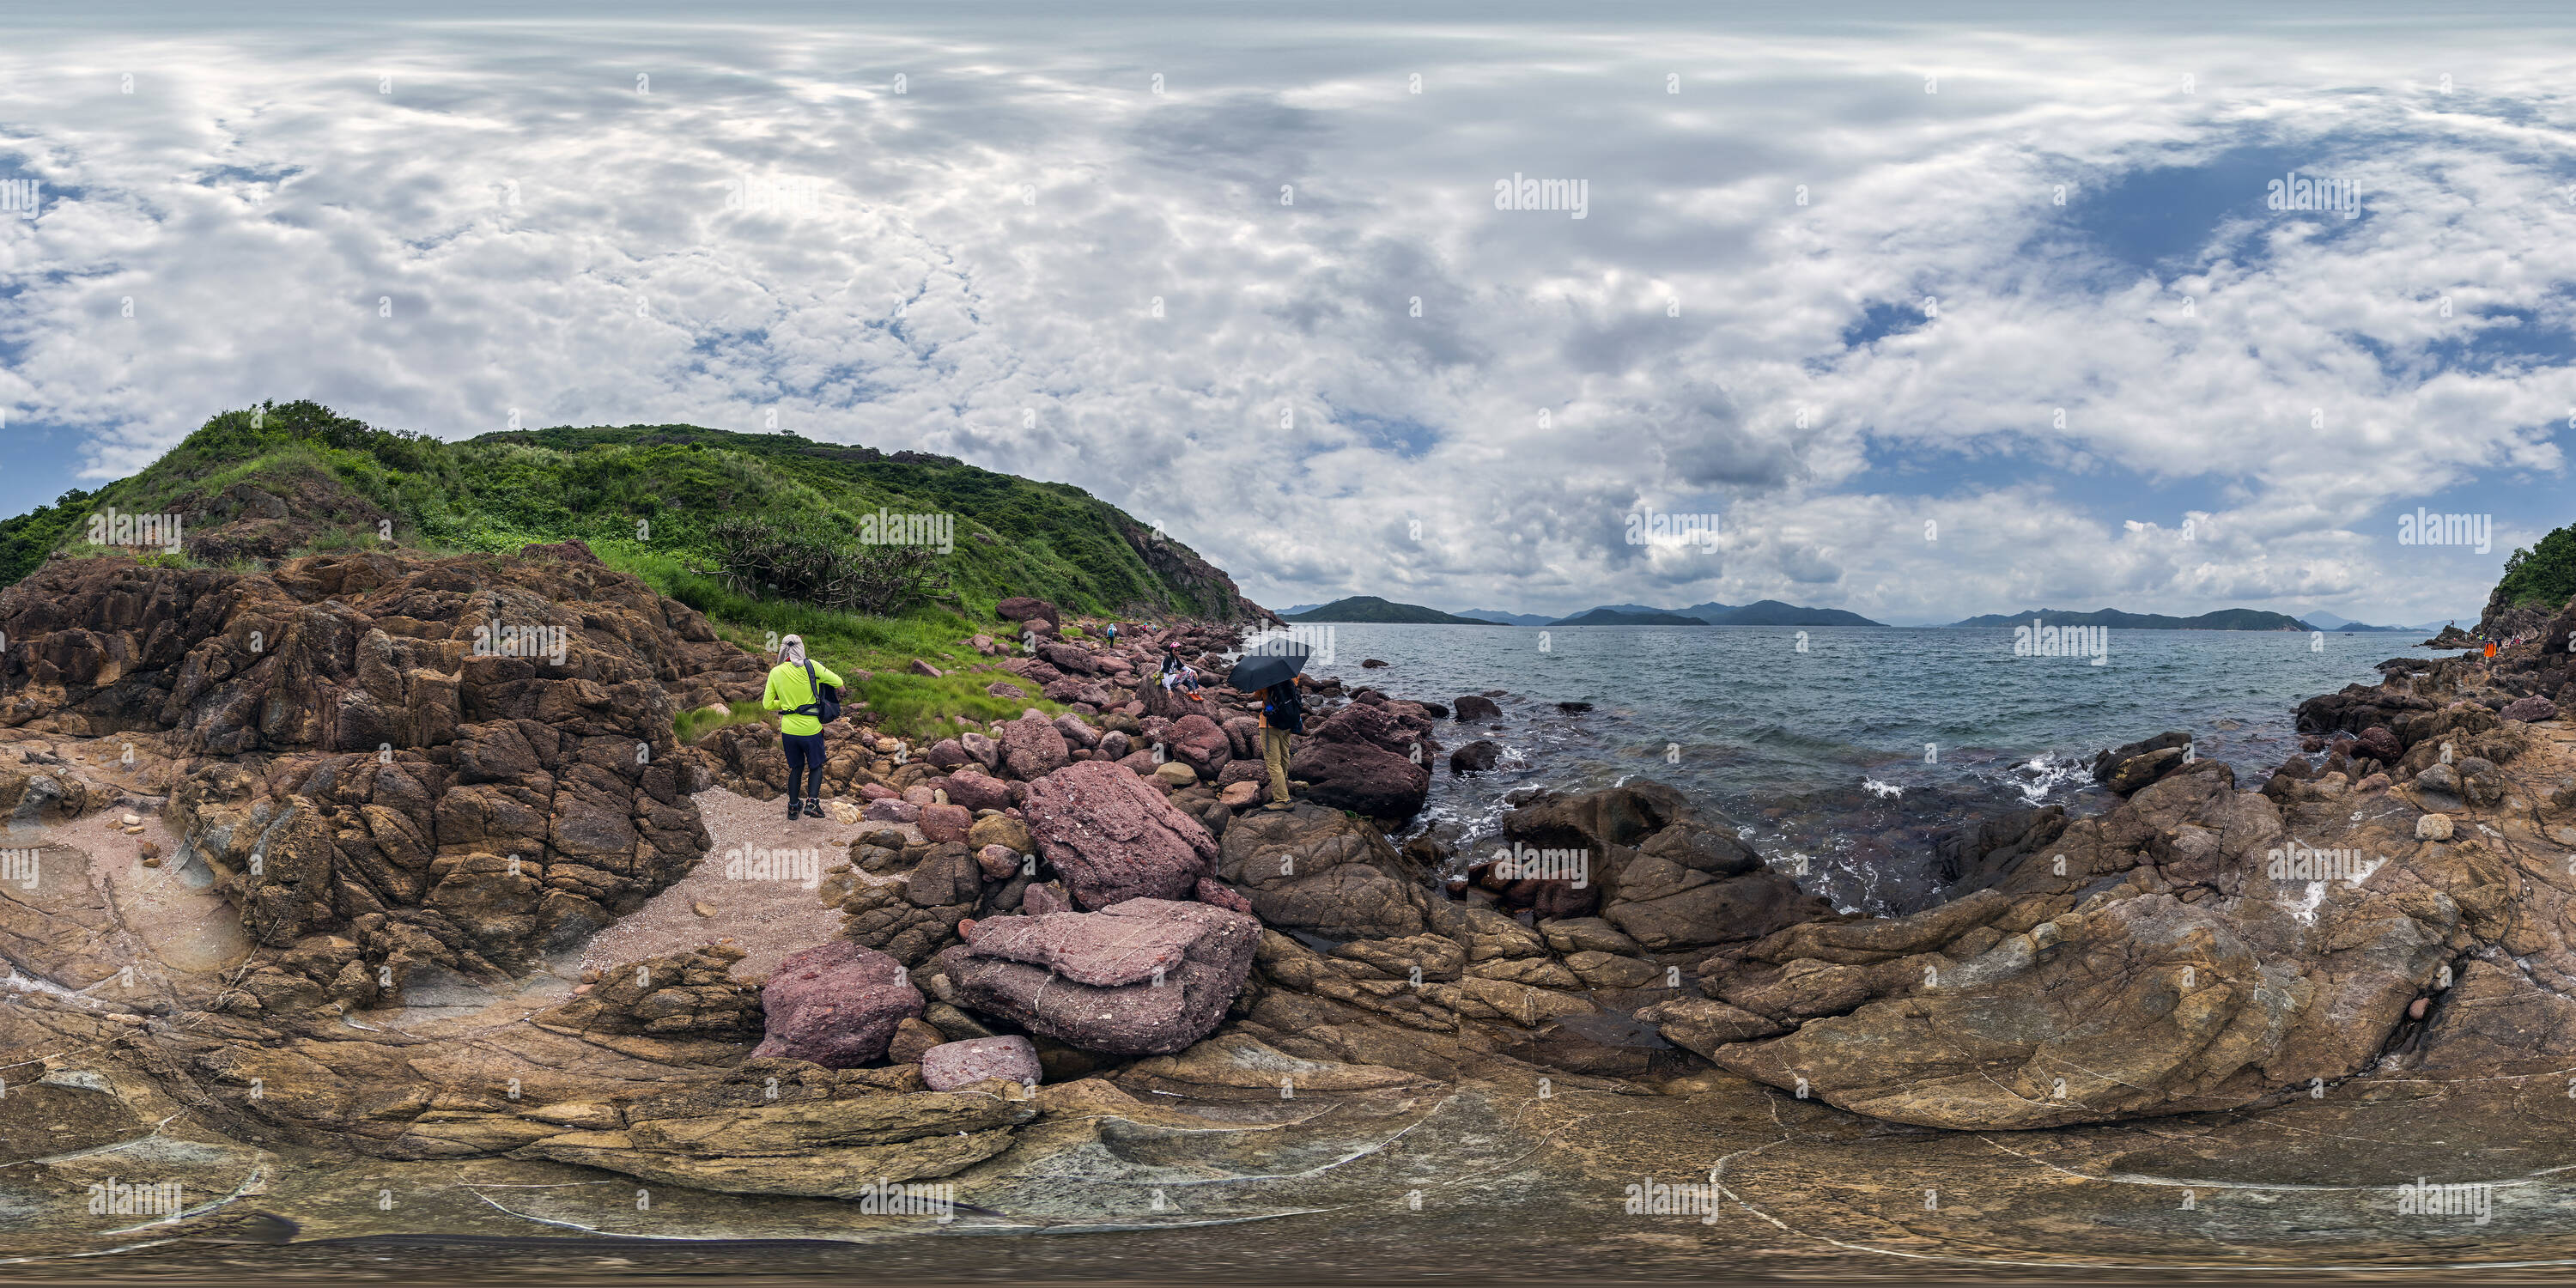 La Côte rouge(赤洲紅色海岸), l'île de Port, HK Geopark. Photo Stock